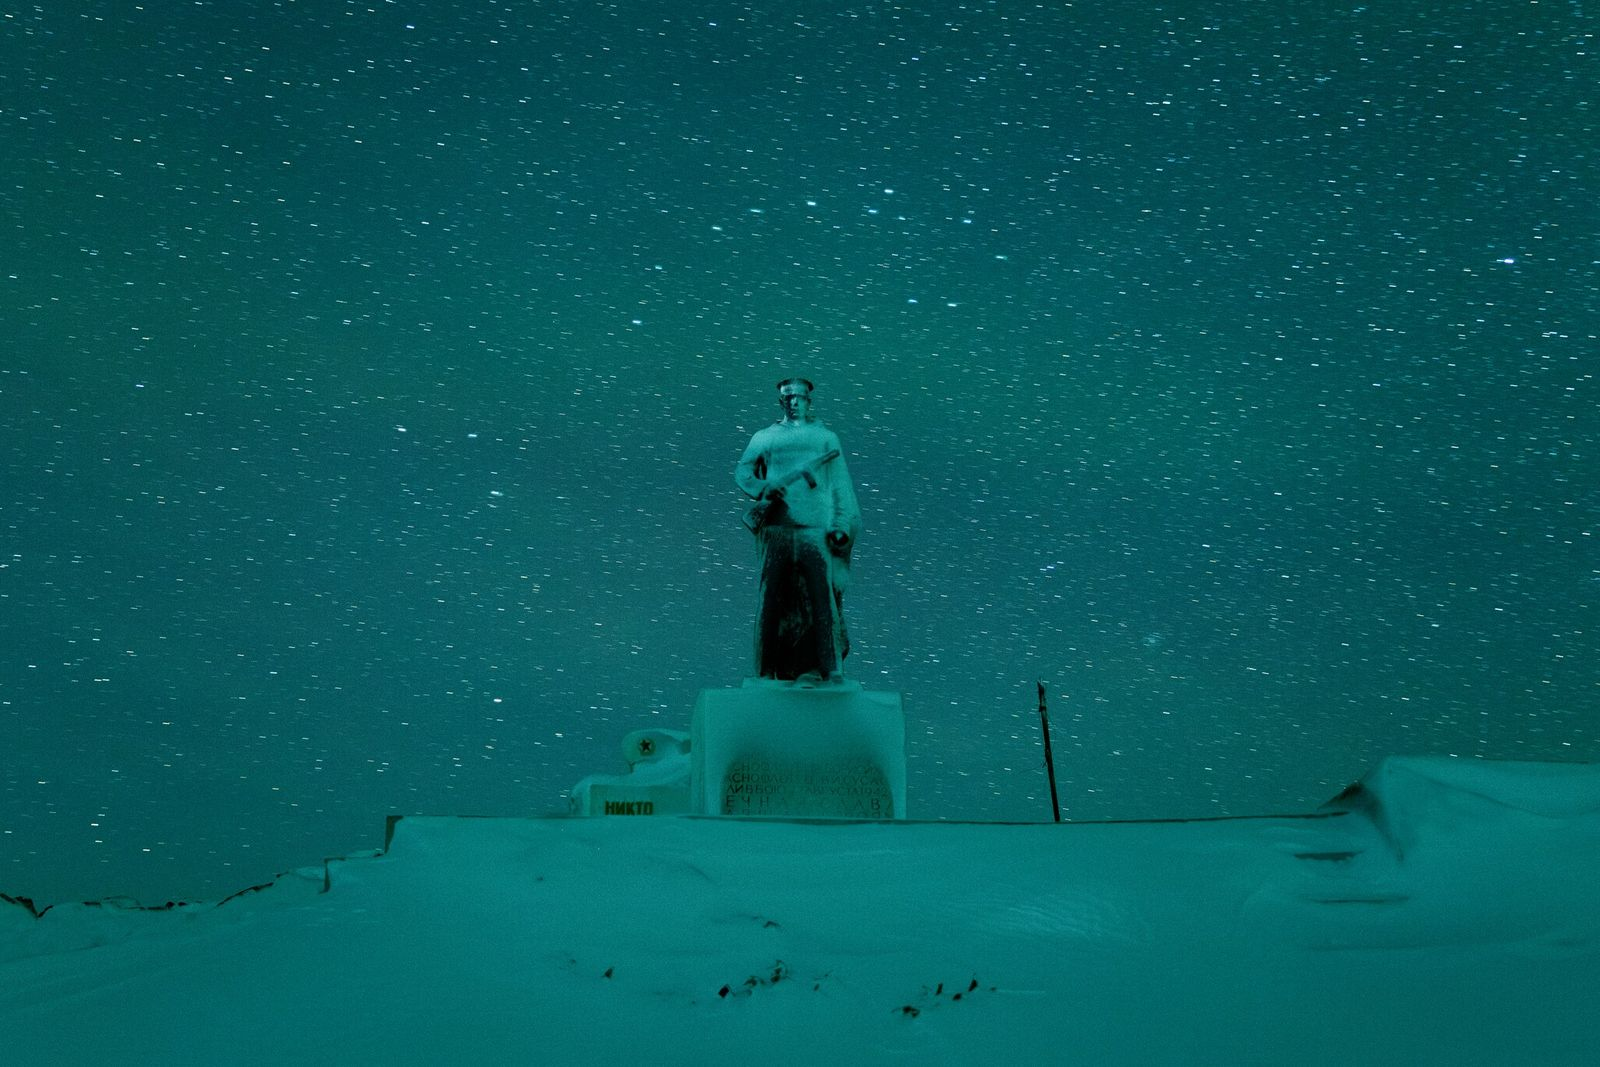 The aurora borealis, or northern lights, casts a colorful spell over a monument in this abandoned ...